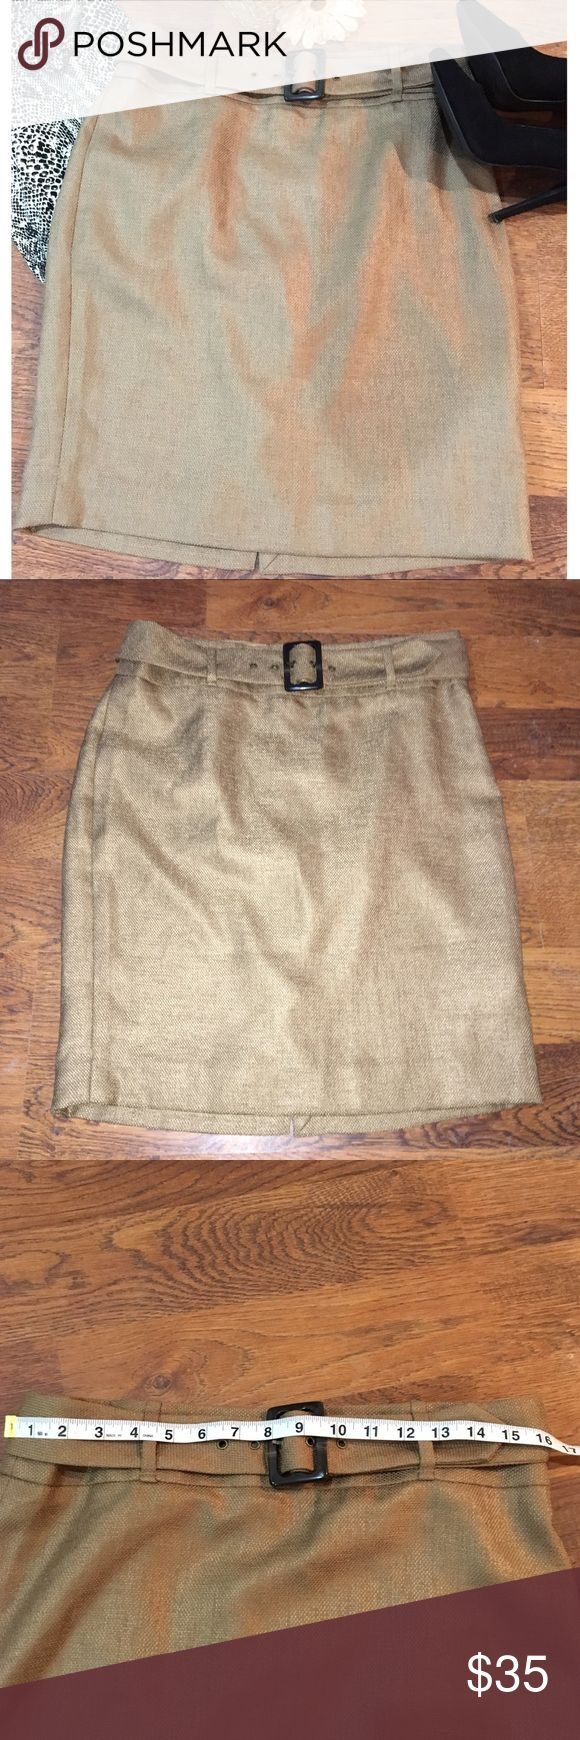 🆕 NWT Tan pencil skirt by The Limited Brand new never worn tan pencil skirt by The Limited. Thicker fabric, fully lined. Belt included. The Limited Skirts Pencil